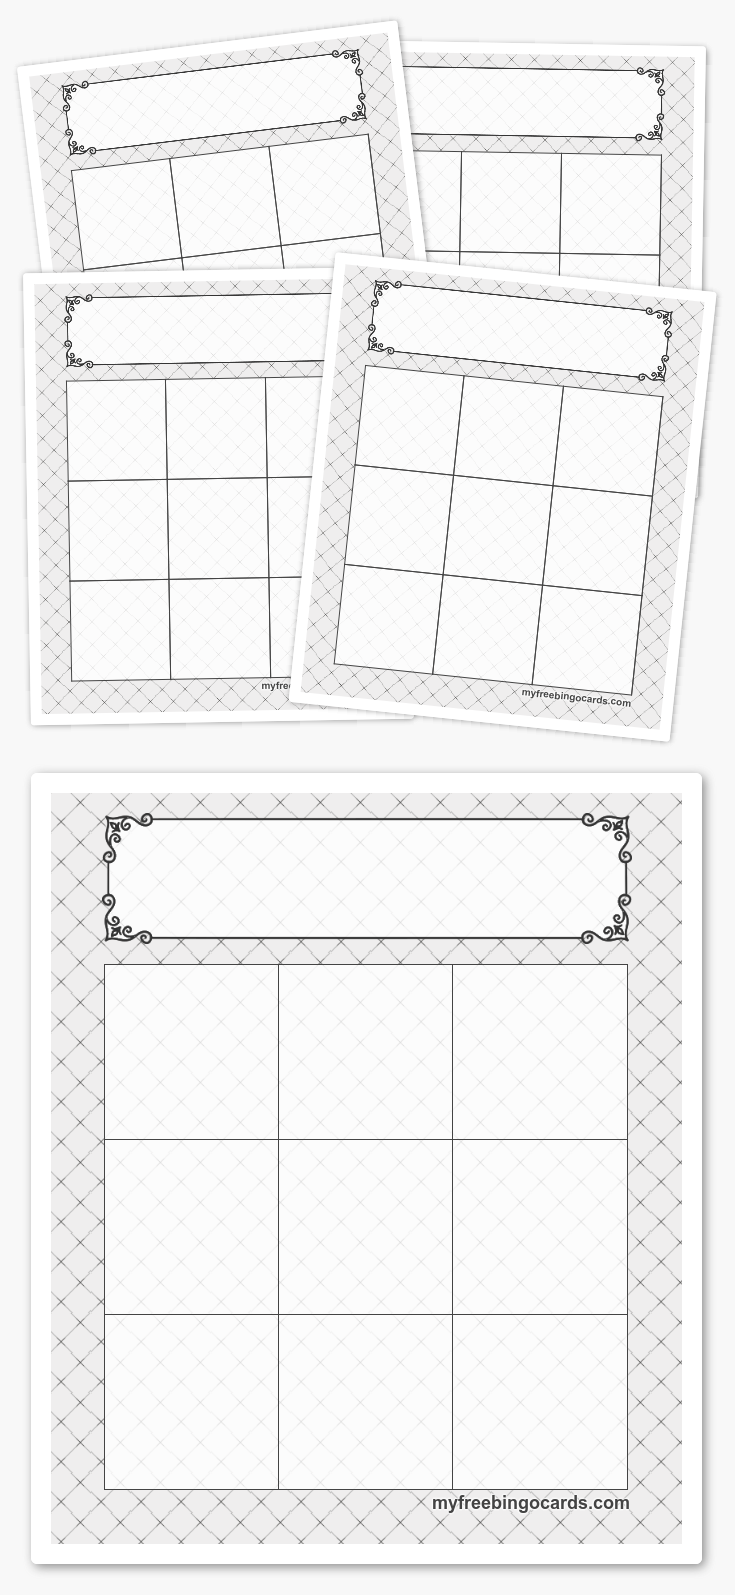 3x3 bingo templates cards | Pinterest | Schule